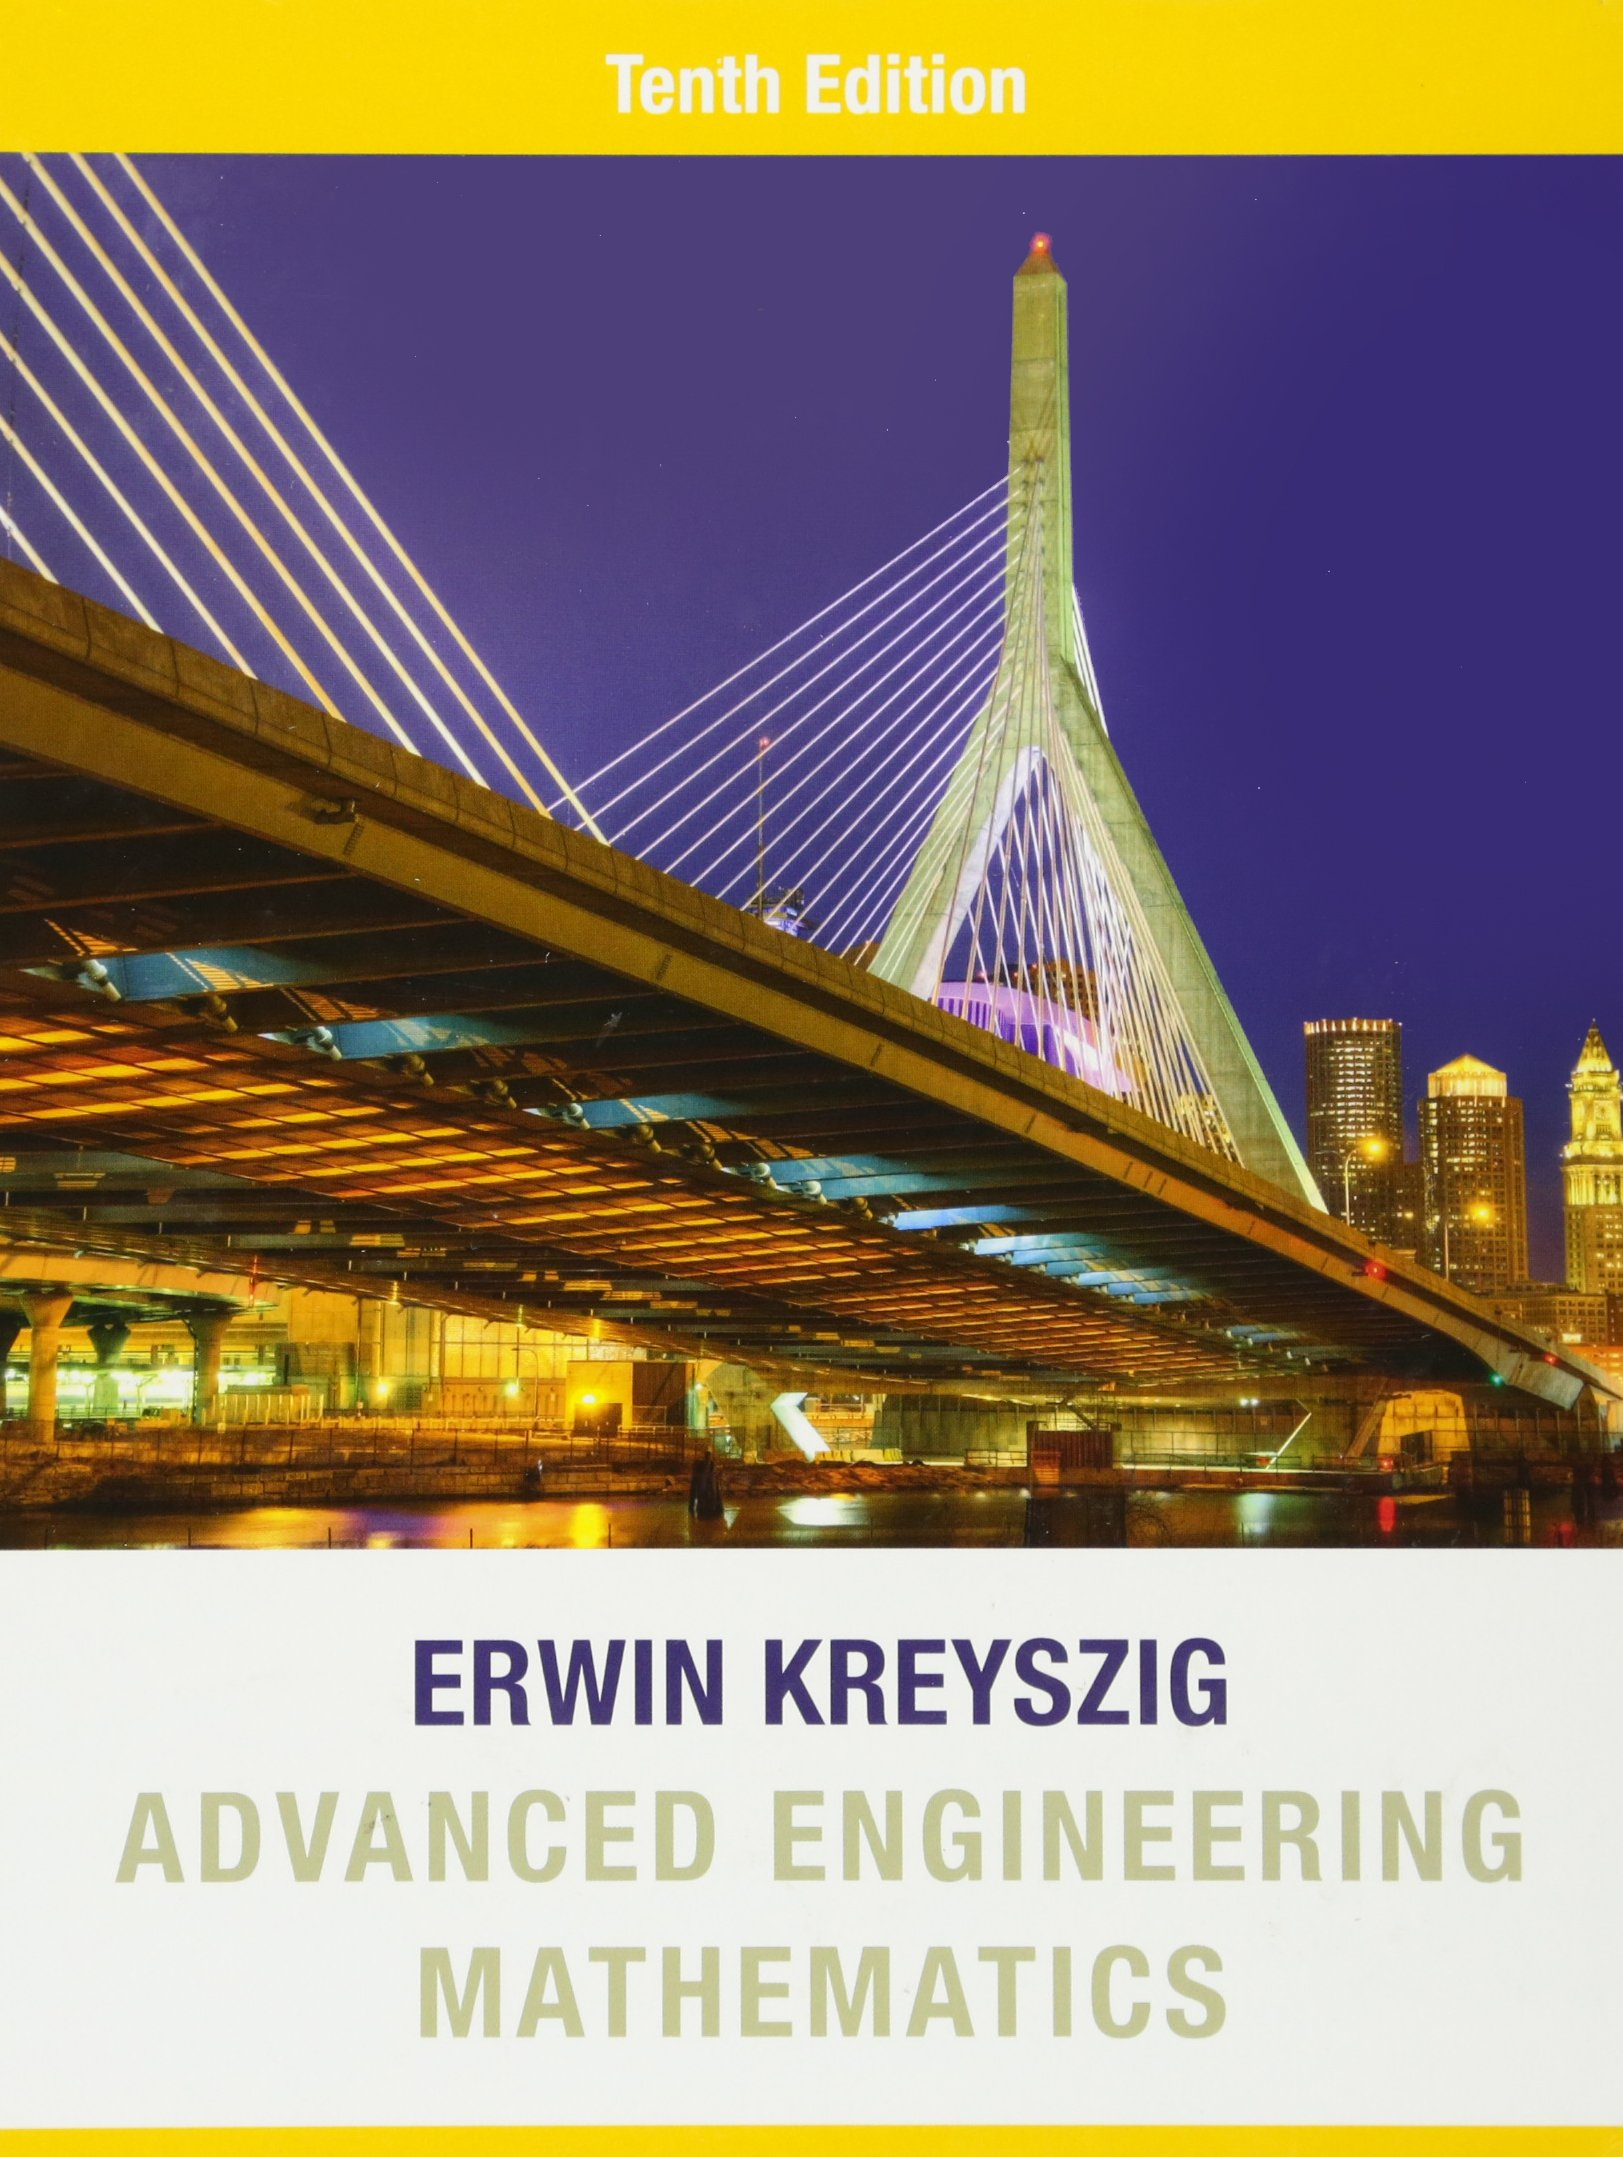 Advanced Engineering Mathematics: Amazon.de: Erwin Kreyszig, Herbert  Kreyszig, Edward J. Norminton: Fremdsprachige Bücher